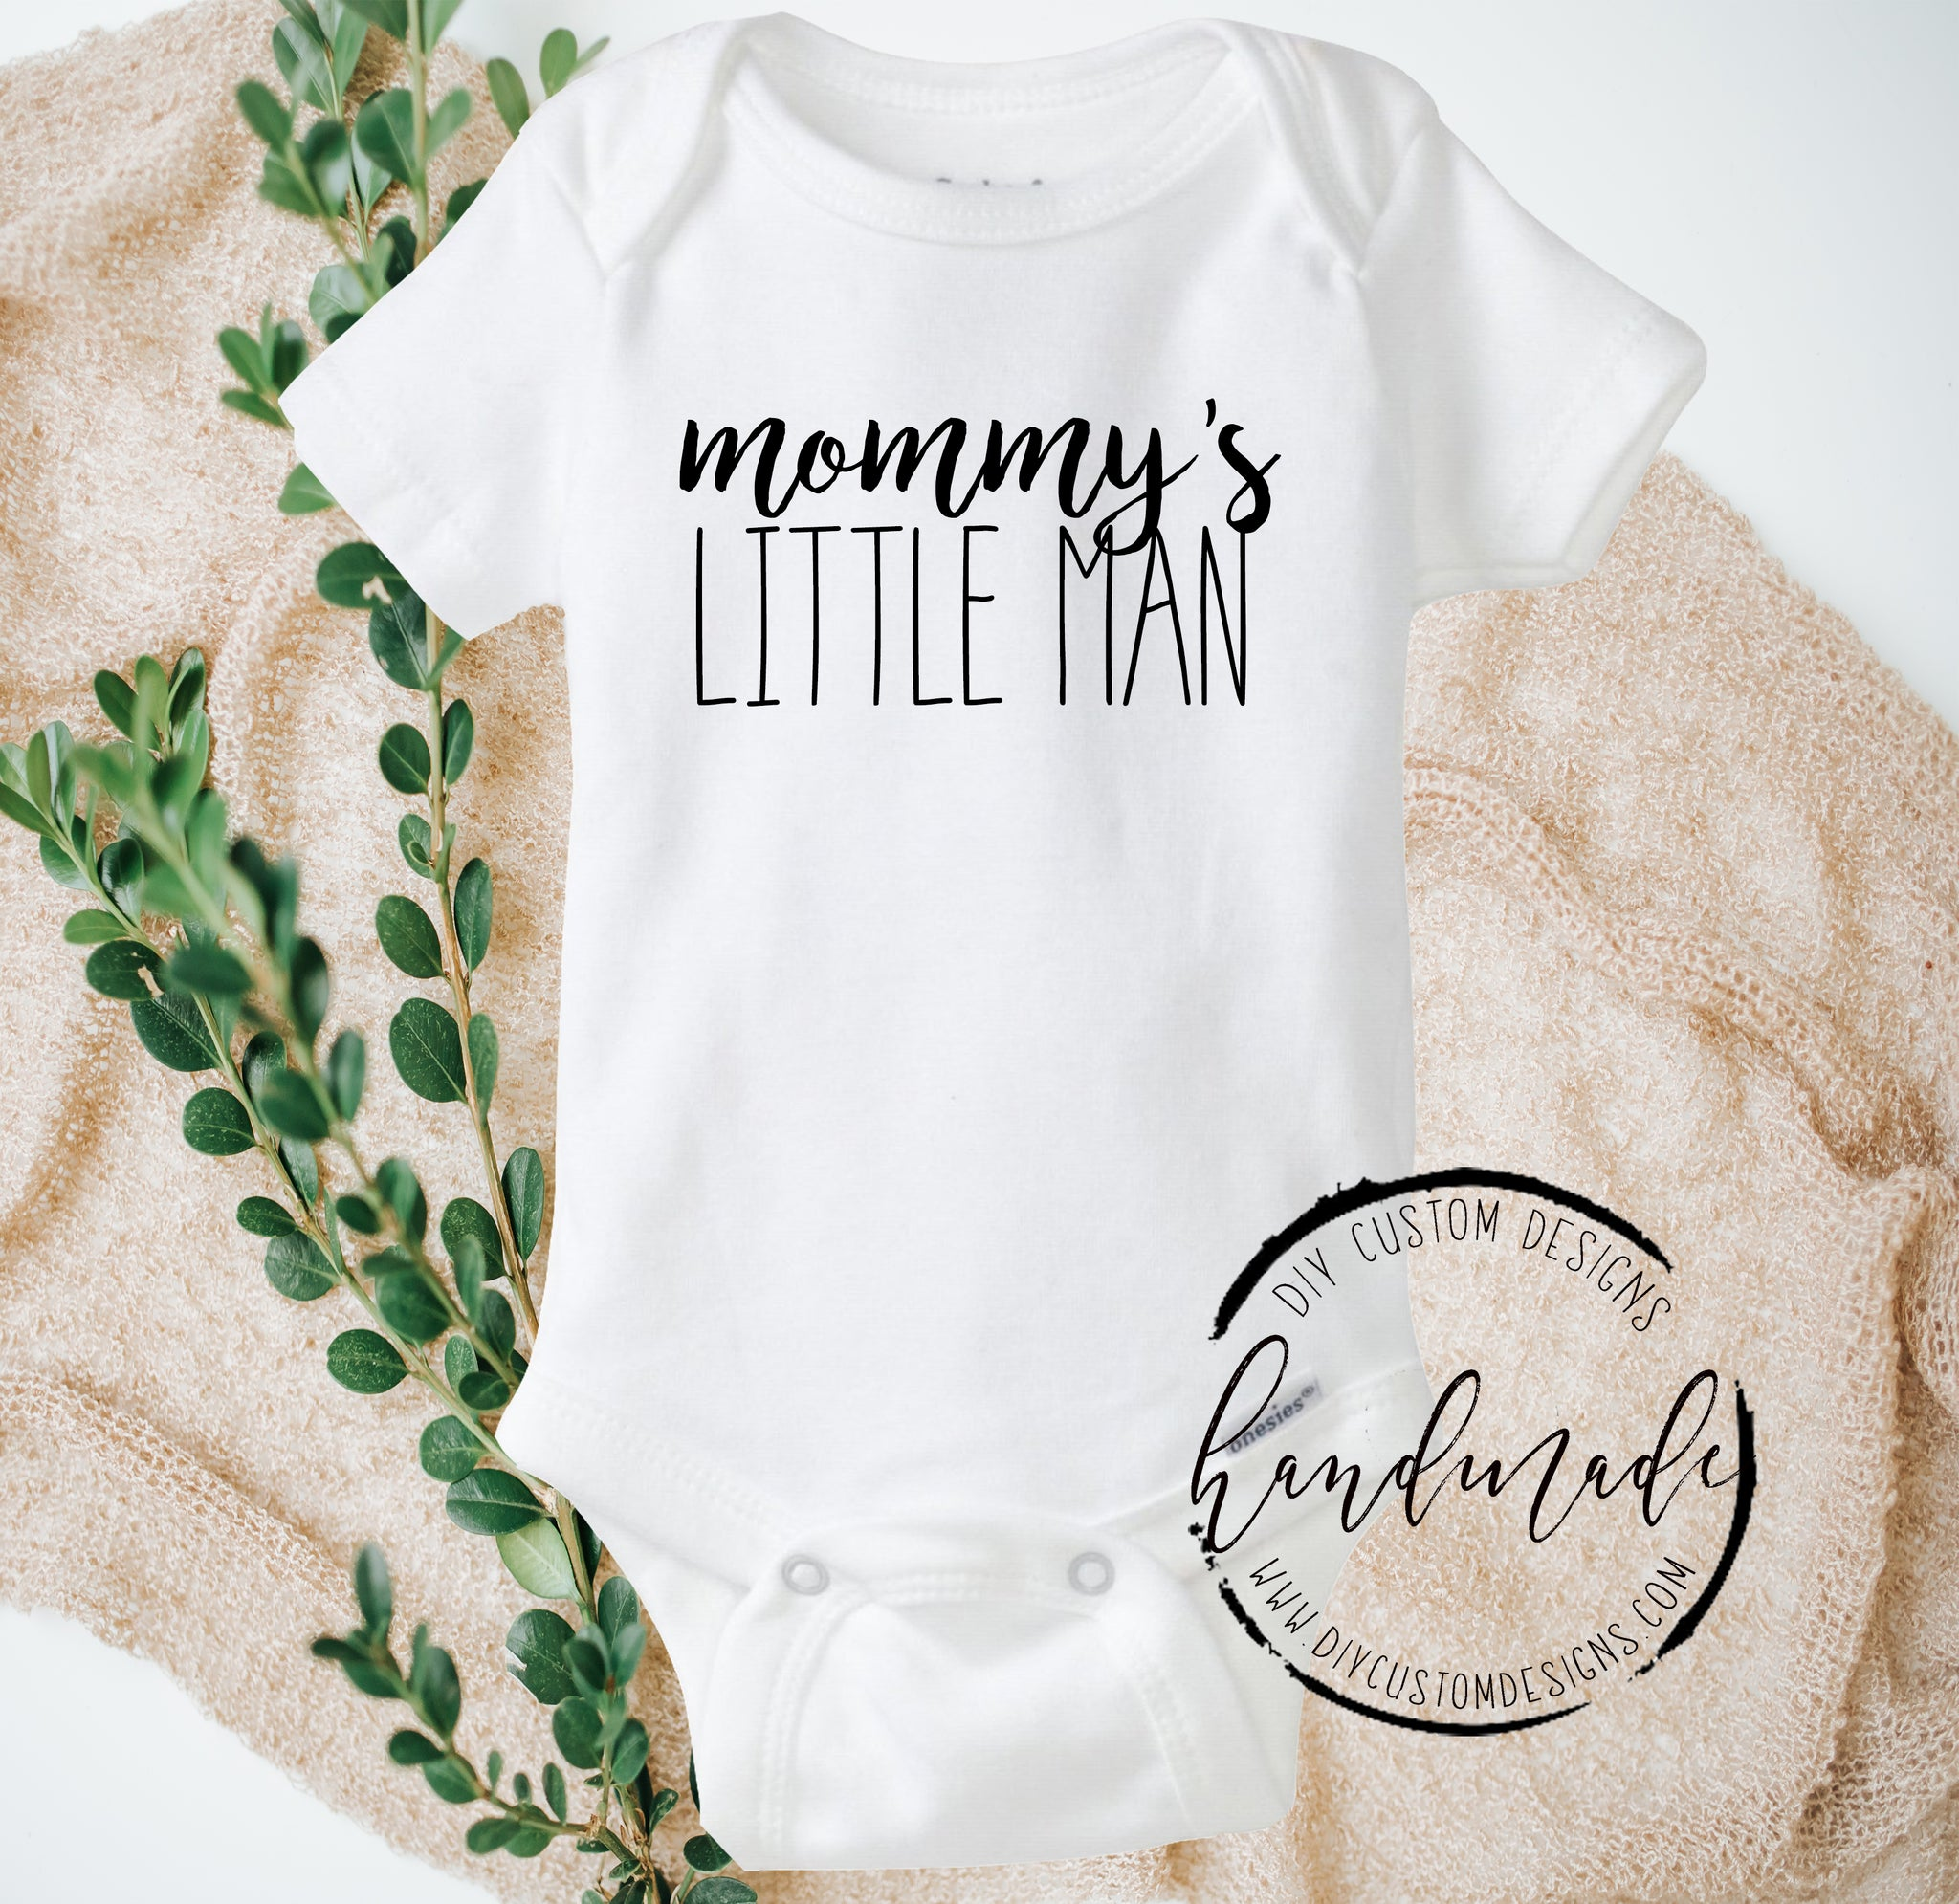 Baby Shower Gift Going Home Outfit Baby Boy Outfit Little Man Baby Onesie Baby Boy Baby Boy Onesie Gift For Baby Boy